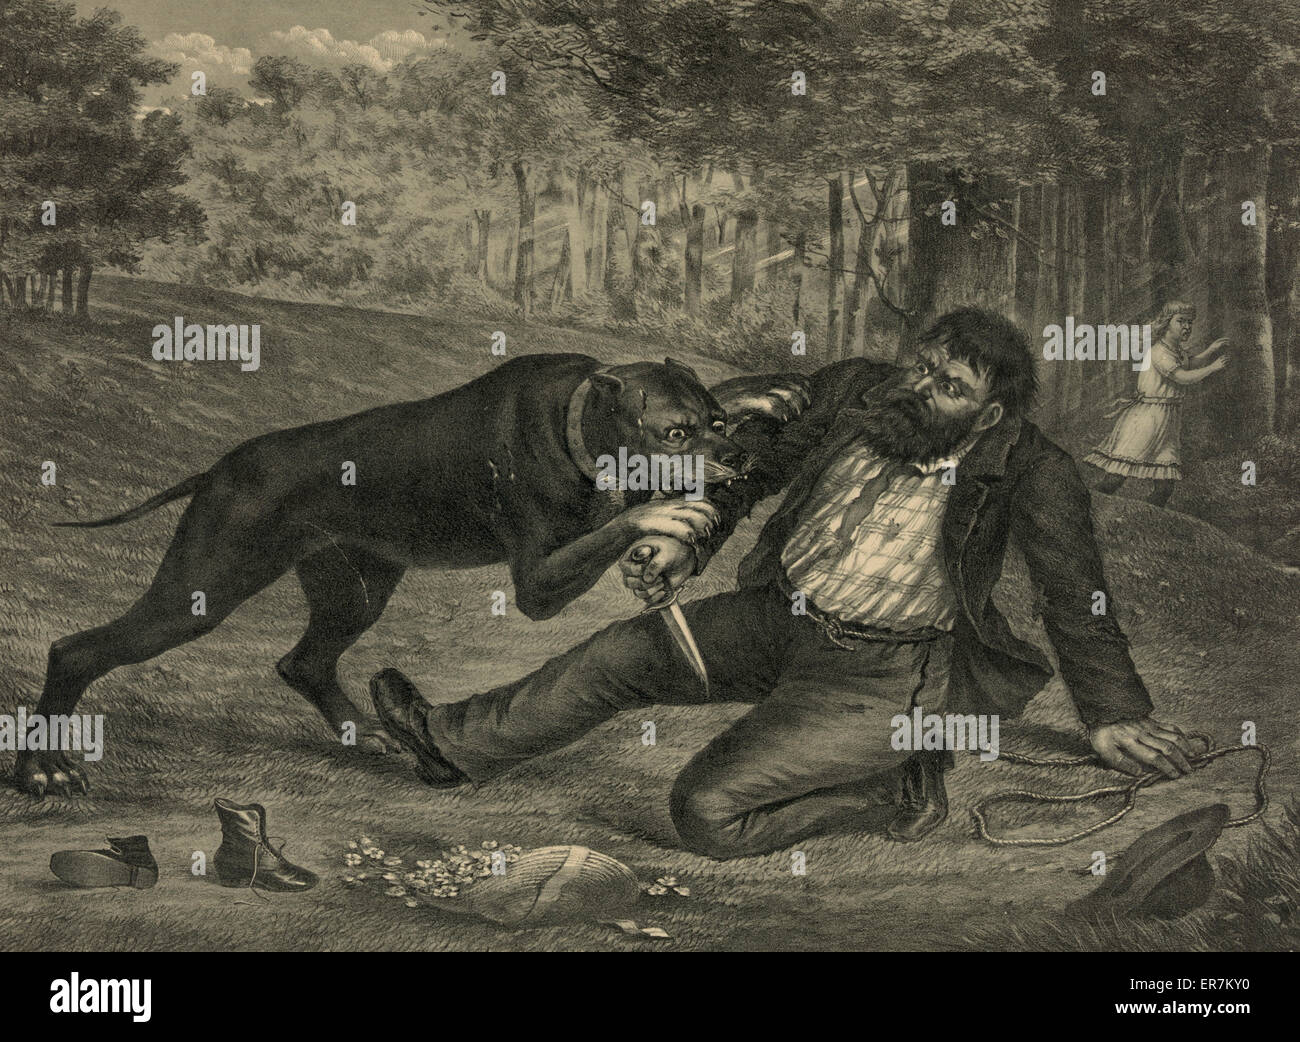 A deadly conflict. The kidnapper foiled. Date c1892 Nov. 12. - Stock Image